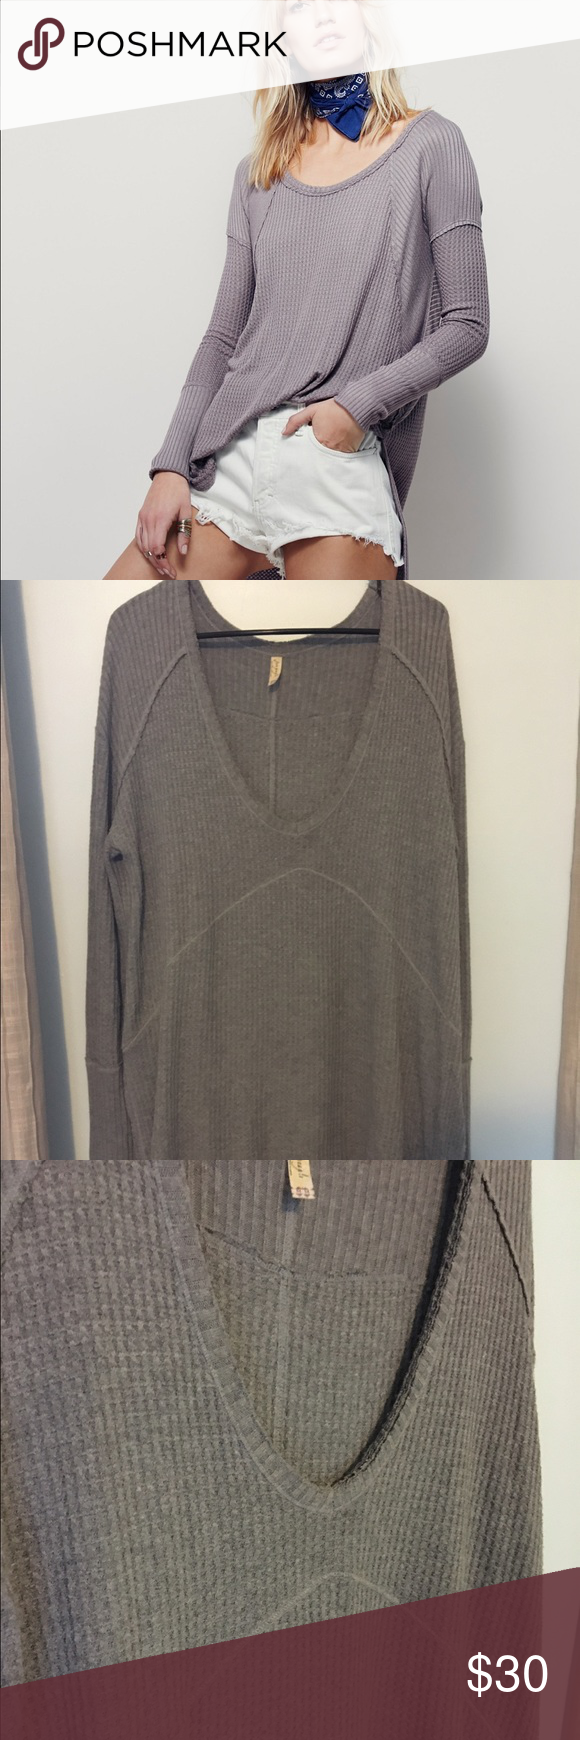 Free People Thermal Tunic Long sleeve grey thermal tunic by Free People, first photo is a photo by FP and a different color but same style. Free People Tops Tunics